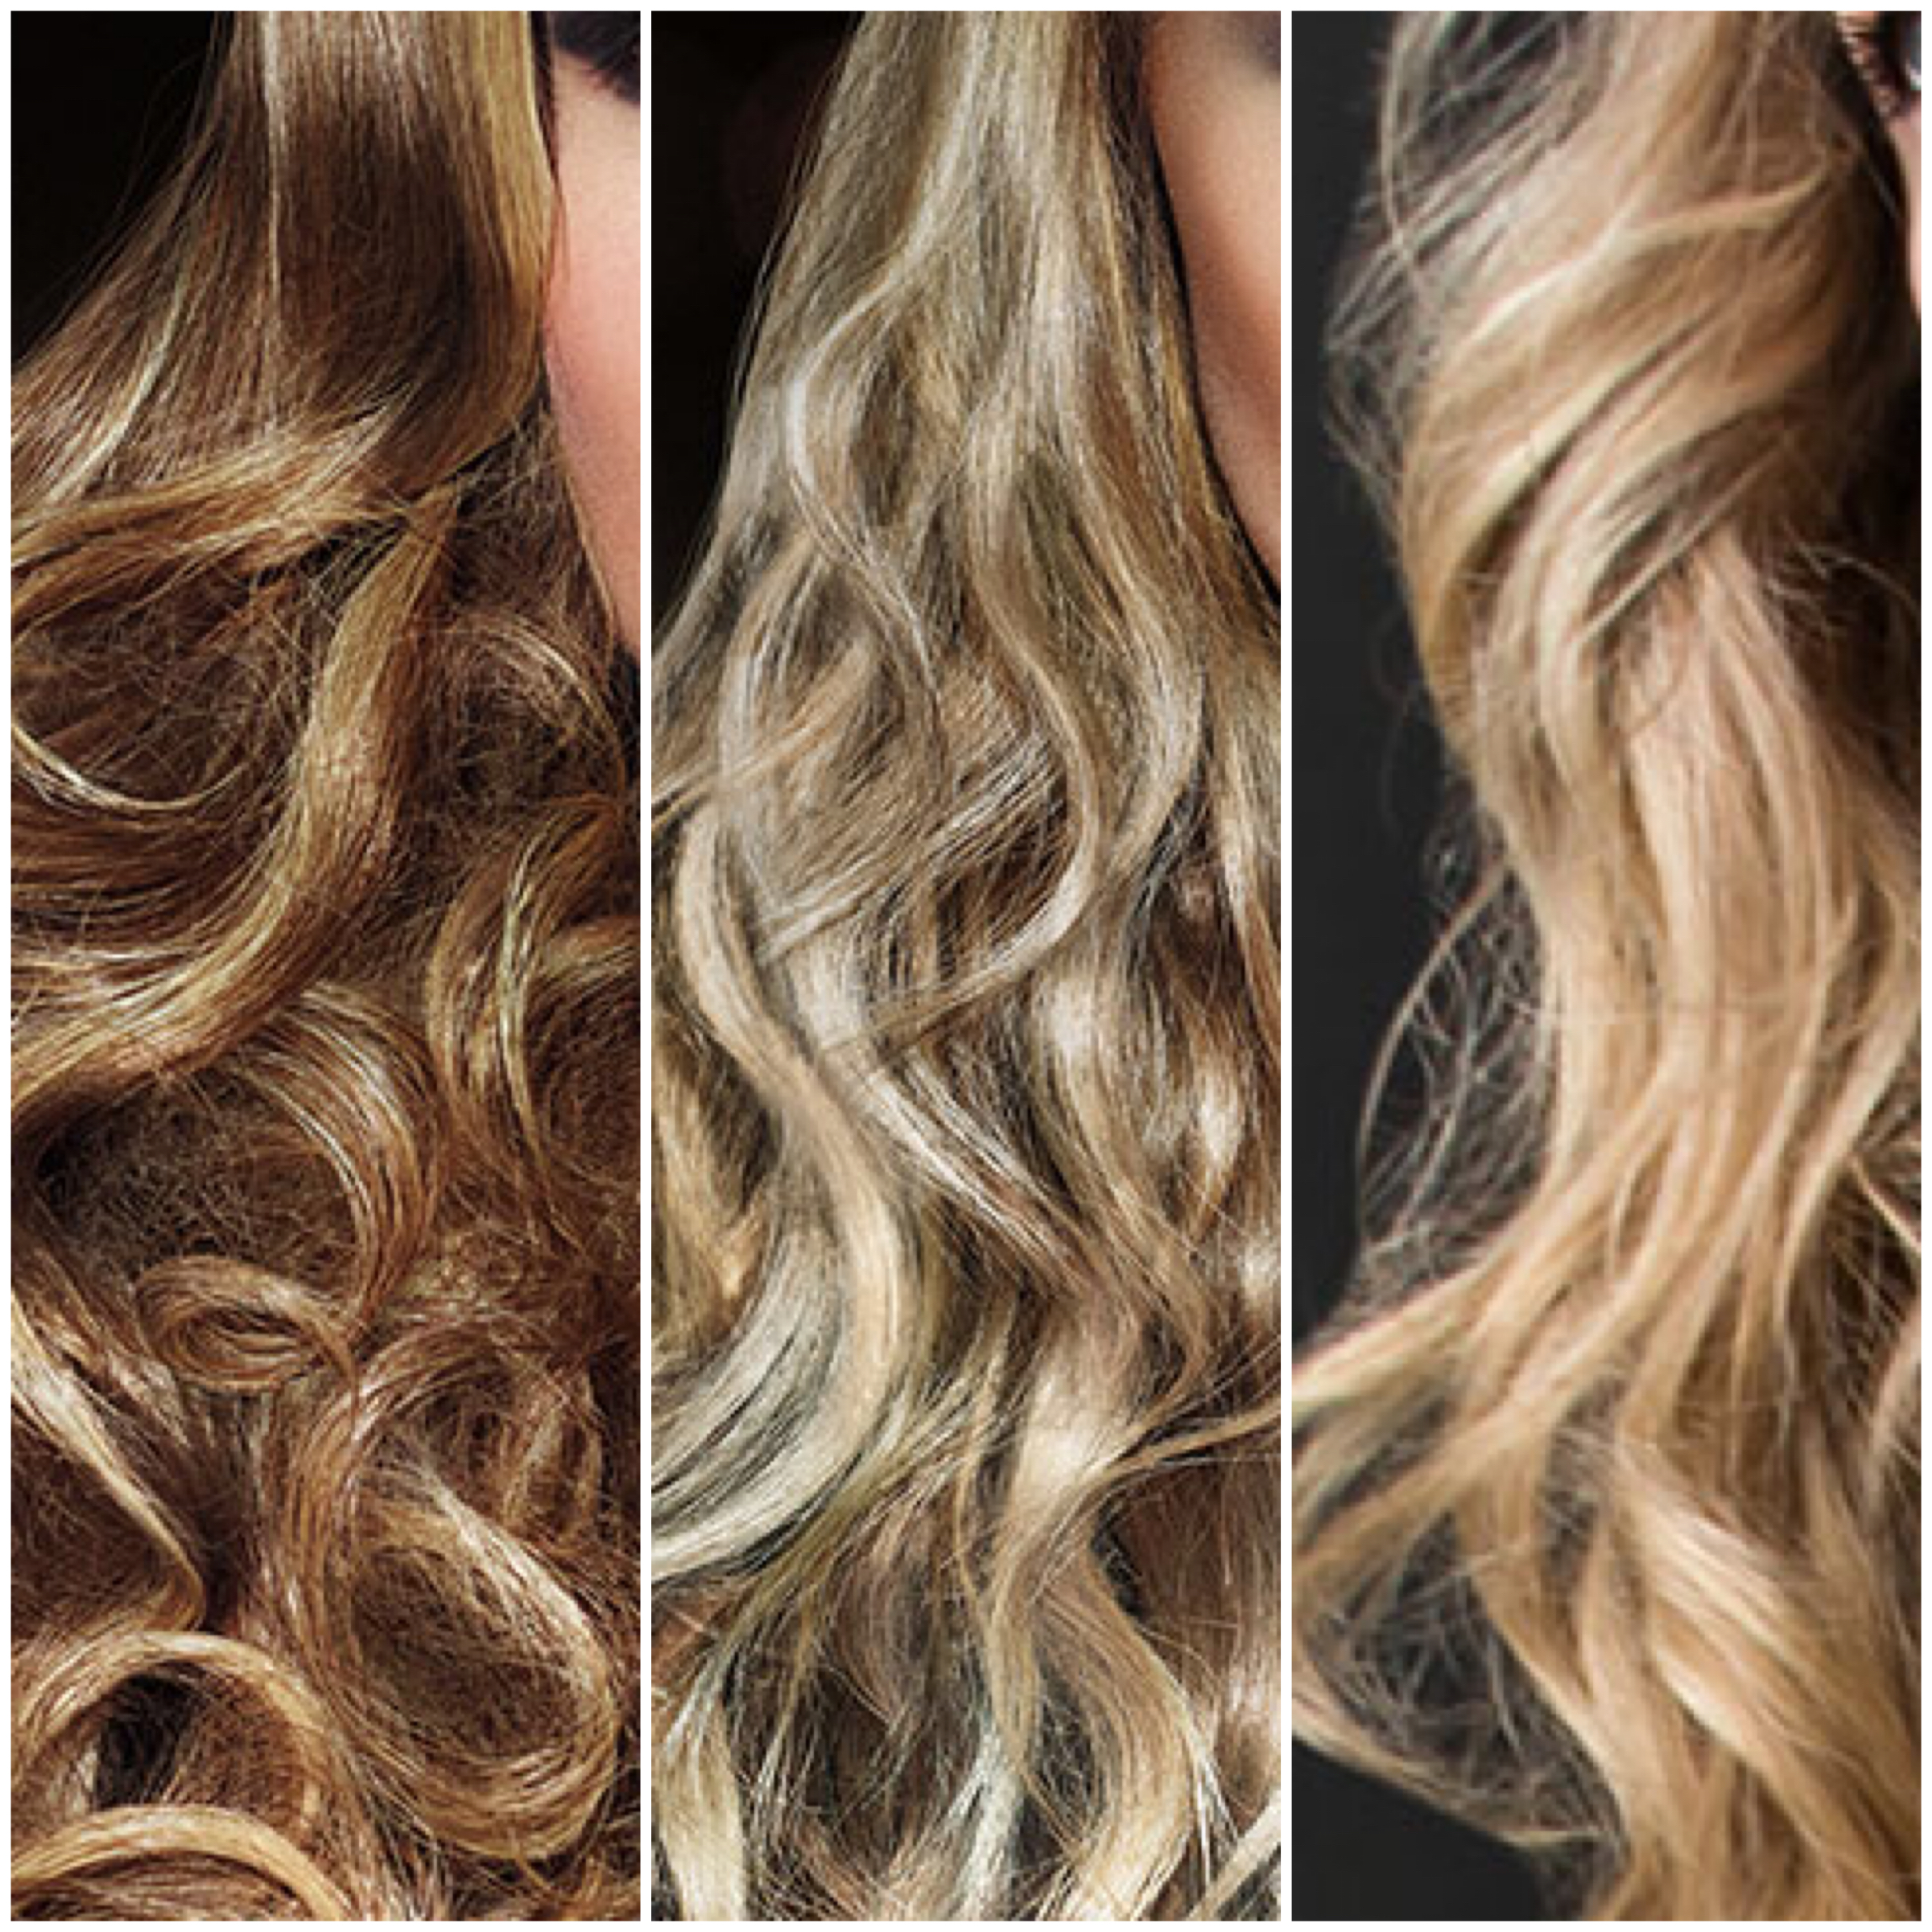 Examples of great balayage from Redken